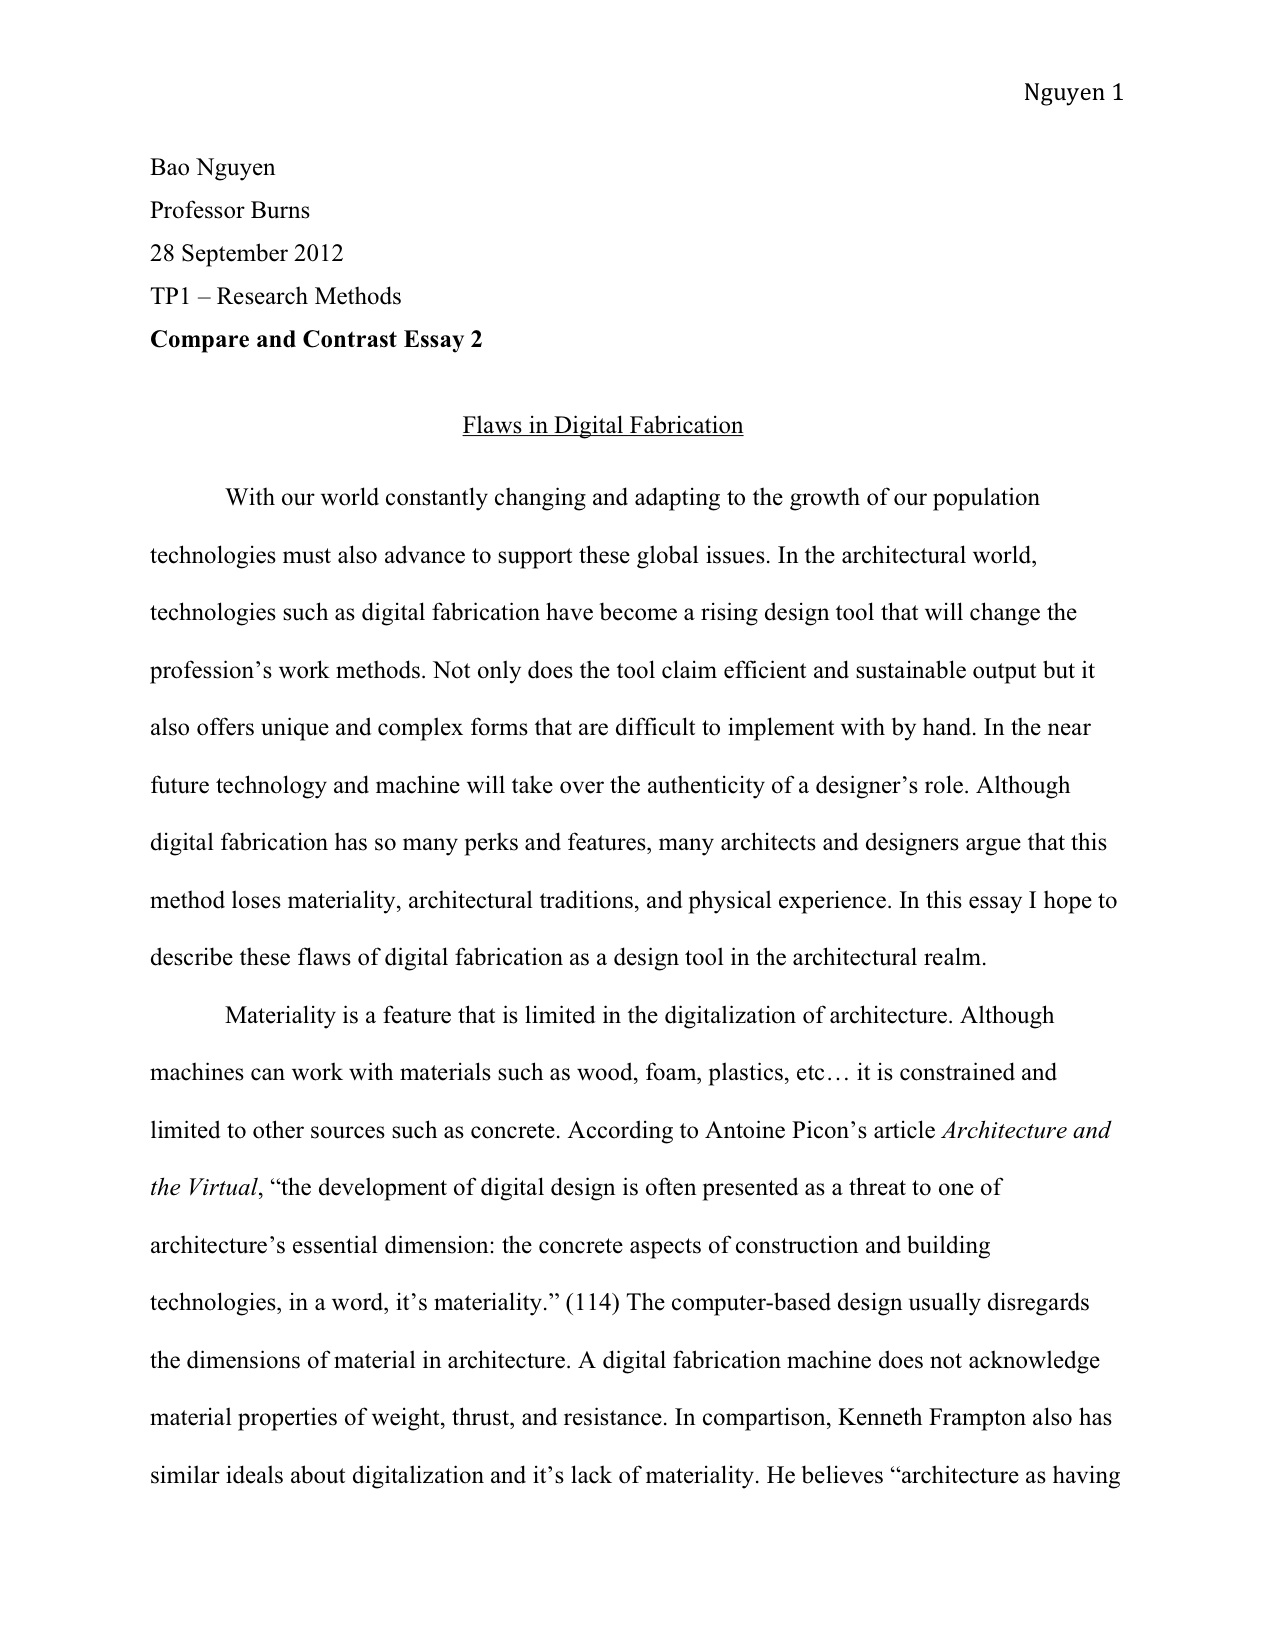 005 How To Write An Essay Example Tp1 3 Shocking About Yourself Conclusion Pdf Academic Fast Full